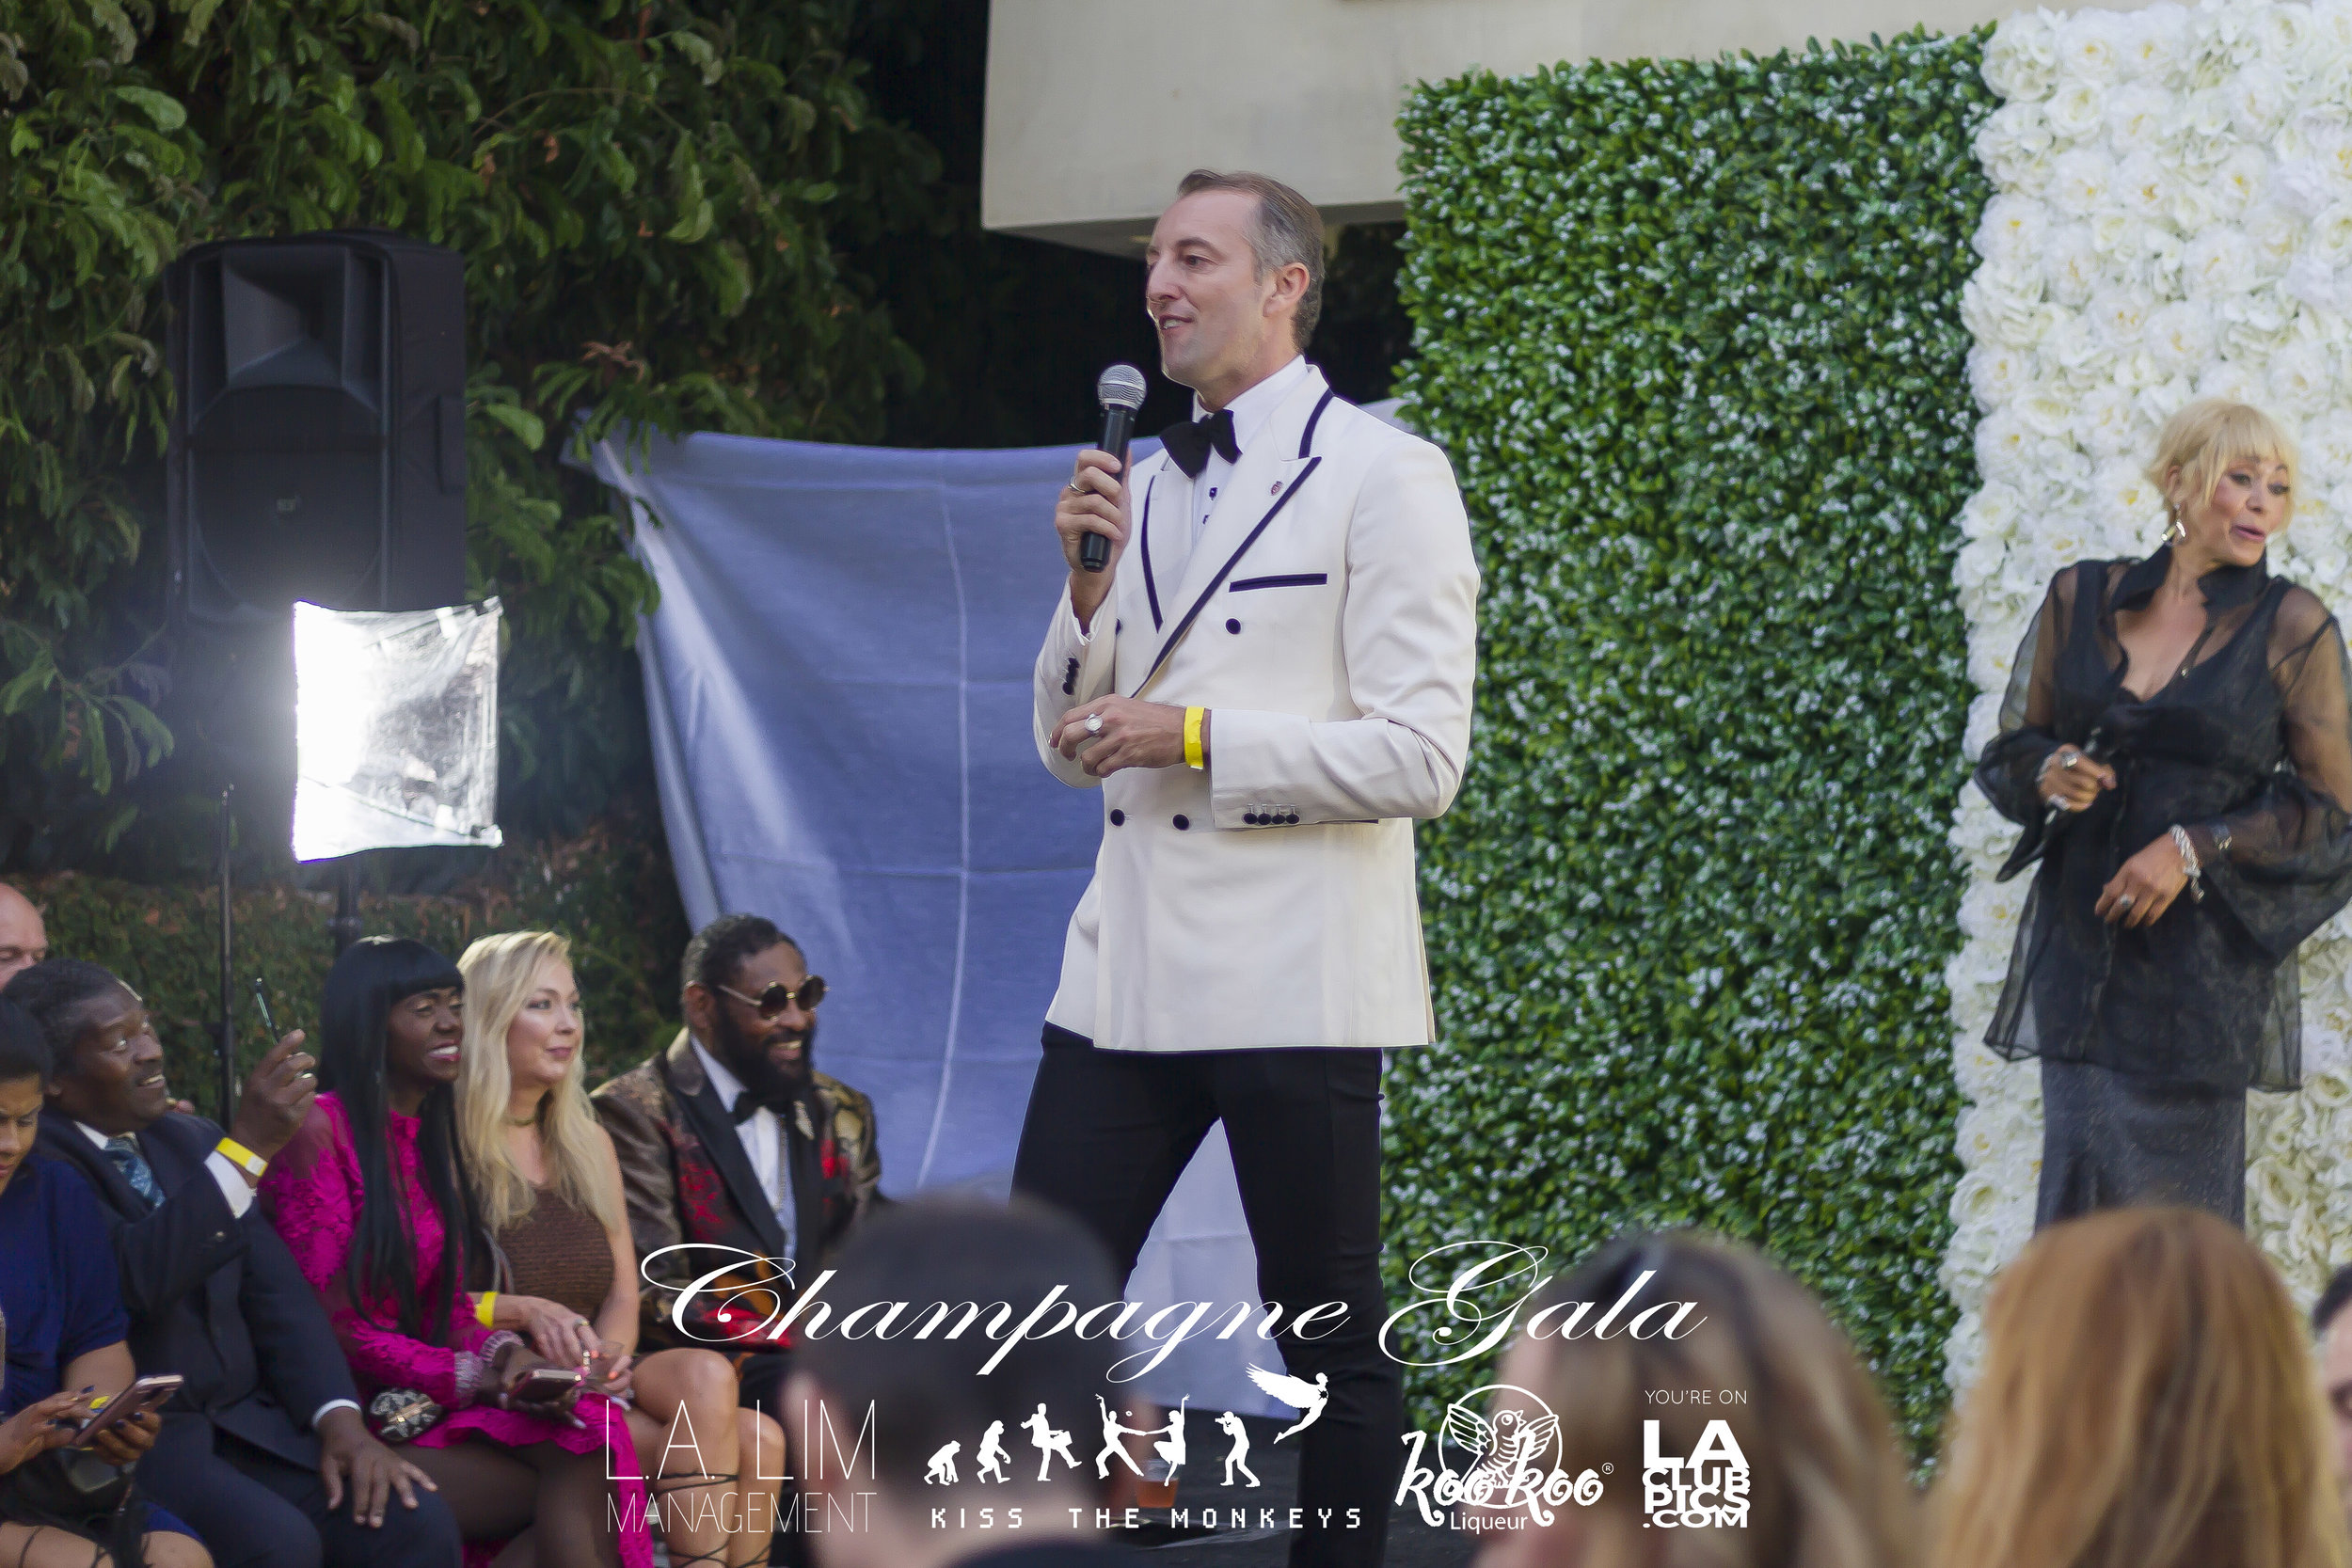 Kiss The Monkeys - Champagne Gala - 07-21-18_198.jpg